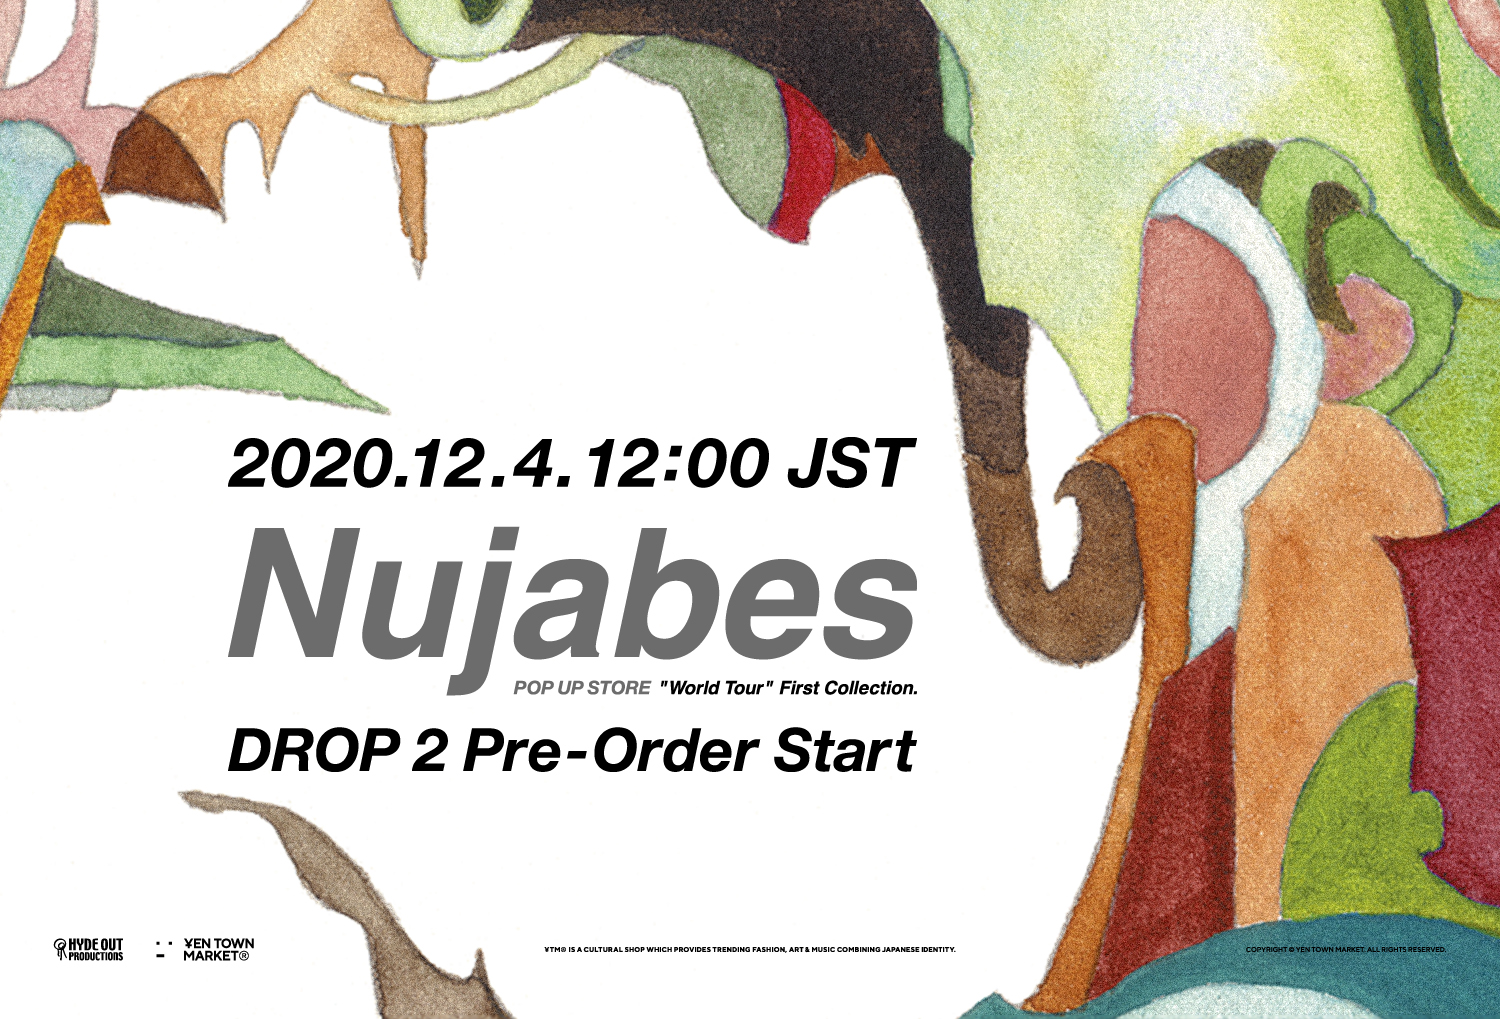 Nujabes Official Pop Up/DROP 2はアルバム「metaphorical music」フィーチャー! 2020年12月4日(金)よりスタート